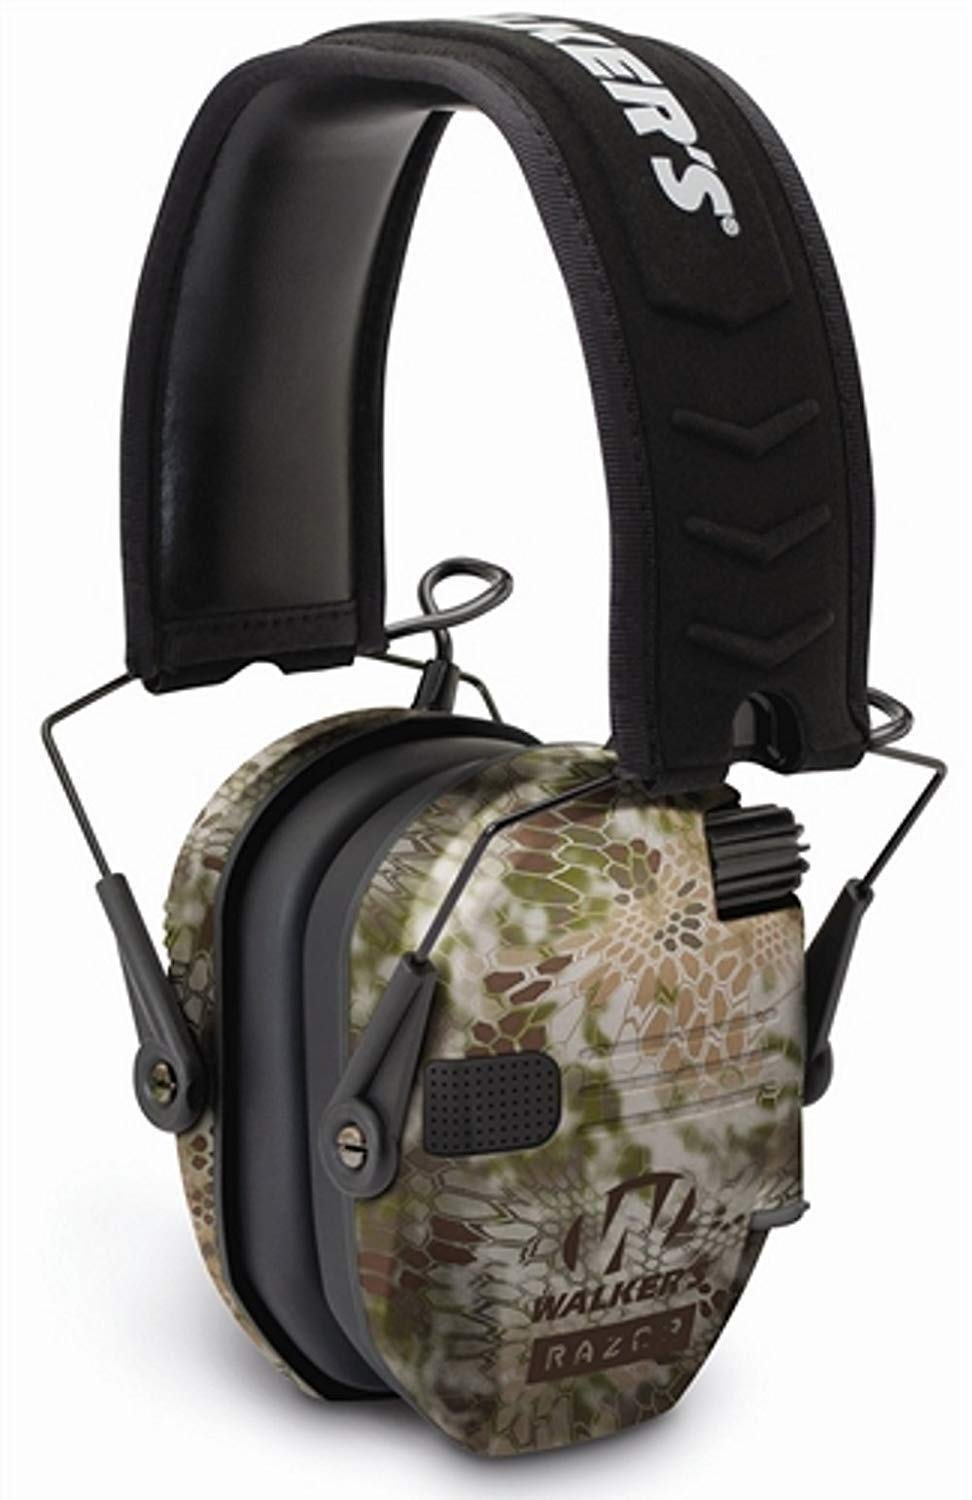 Walkers Razor Slim Electronic Hearing Protection Muffs with Sound Amplification and Suppression and Shooting Glasses Kit (Kryptek Camo) by Walkers (Image #3)